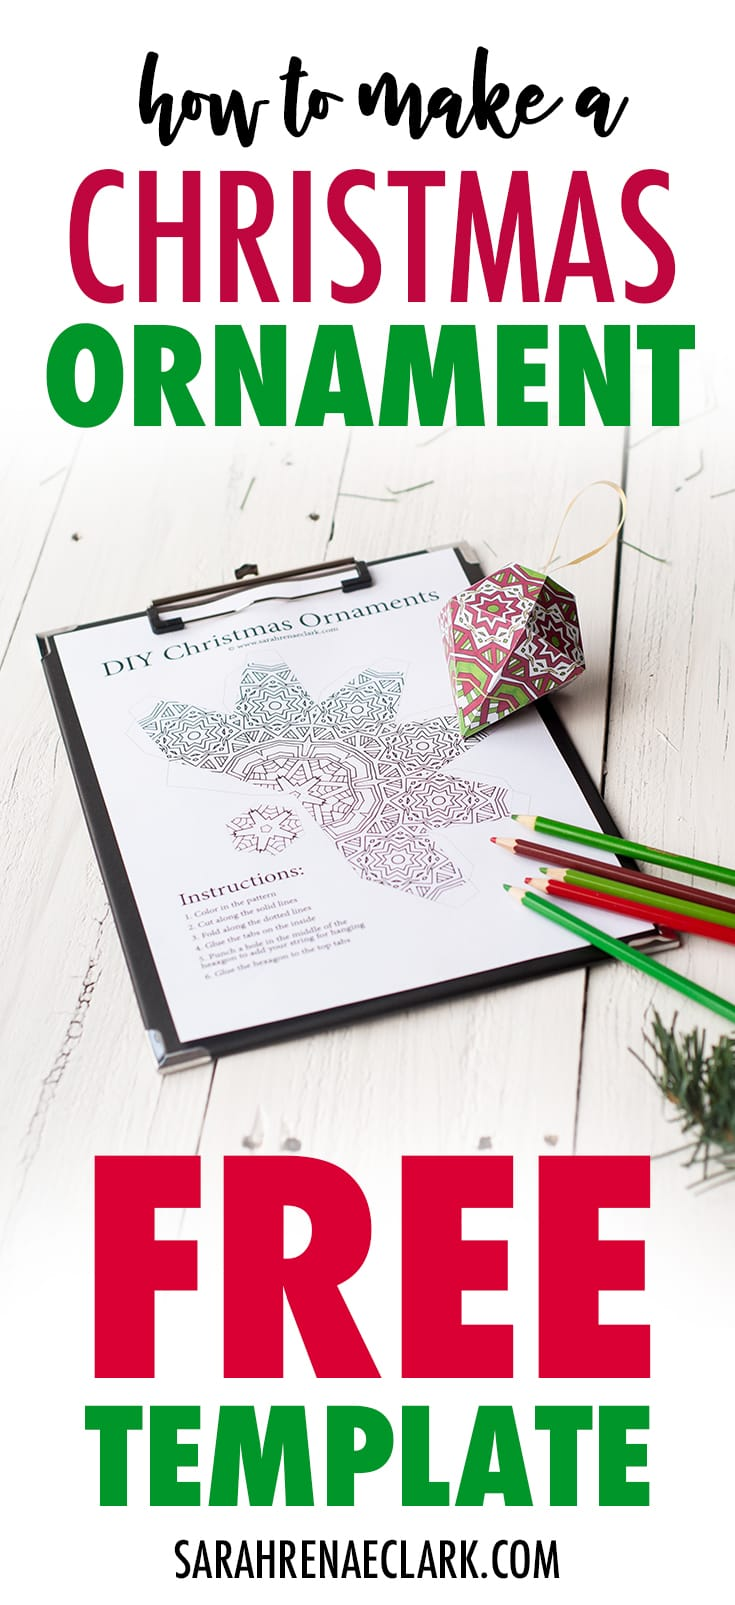 Make a paper ornament for your Christmas tree with this free printable template and tutorial! | Check it out at sarahrenaeclark.com #christmas #freeprintable